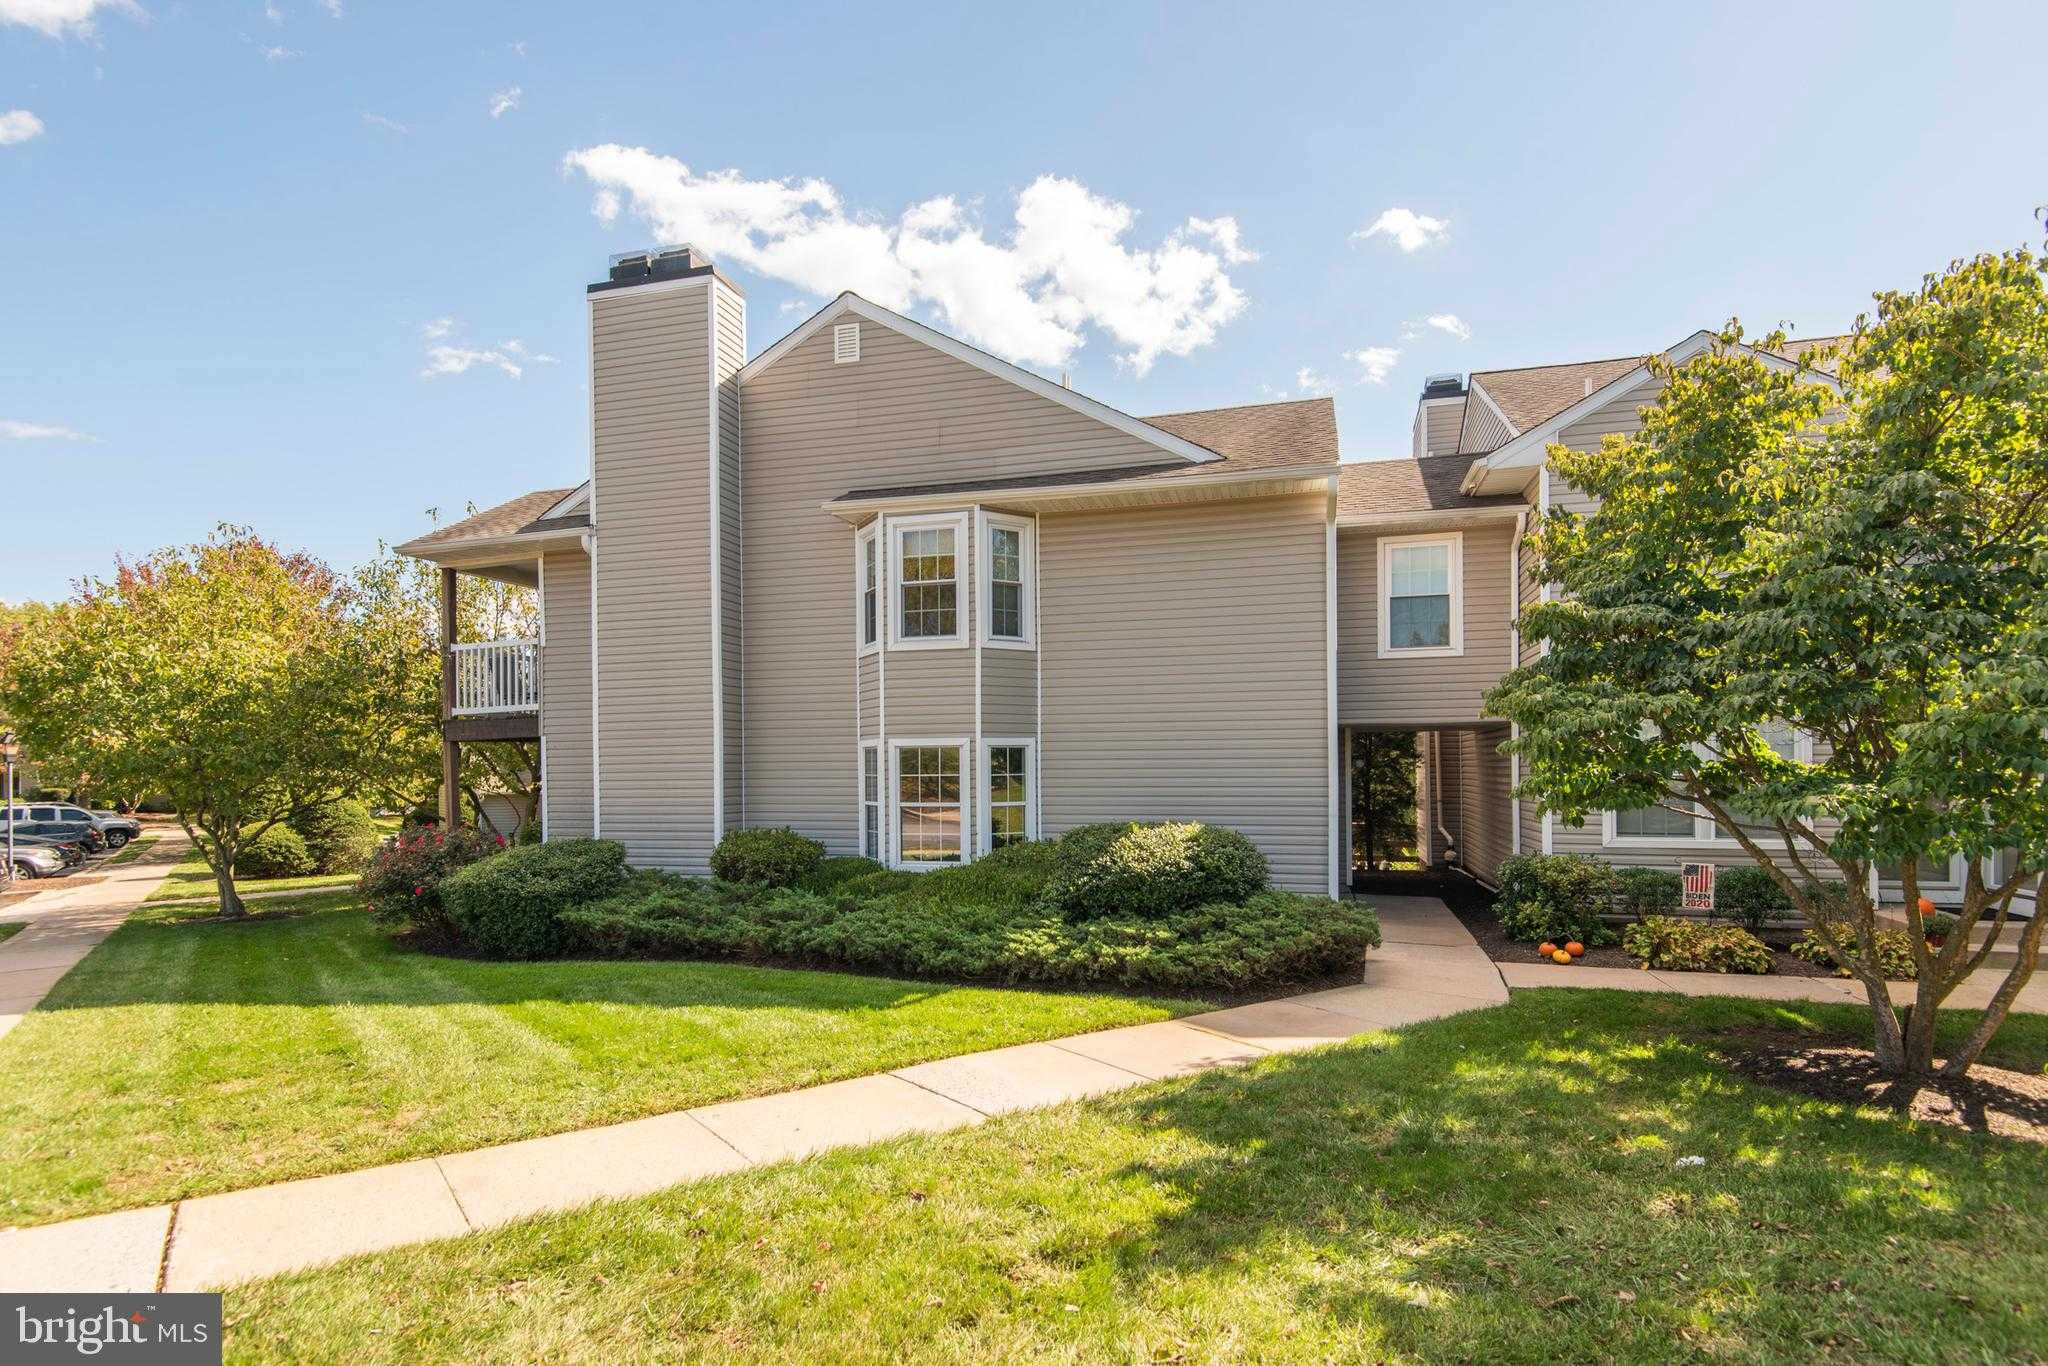 $212,000 - 2Br/2Ba -  for Sale in Exton Station, West Chester